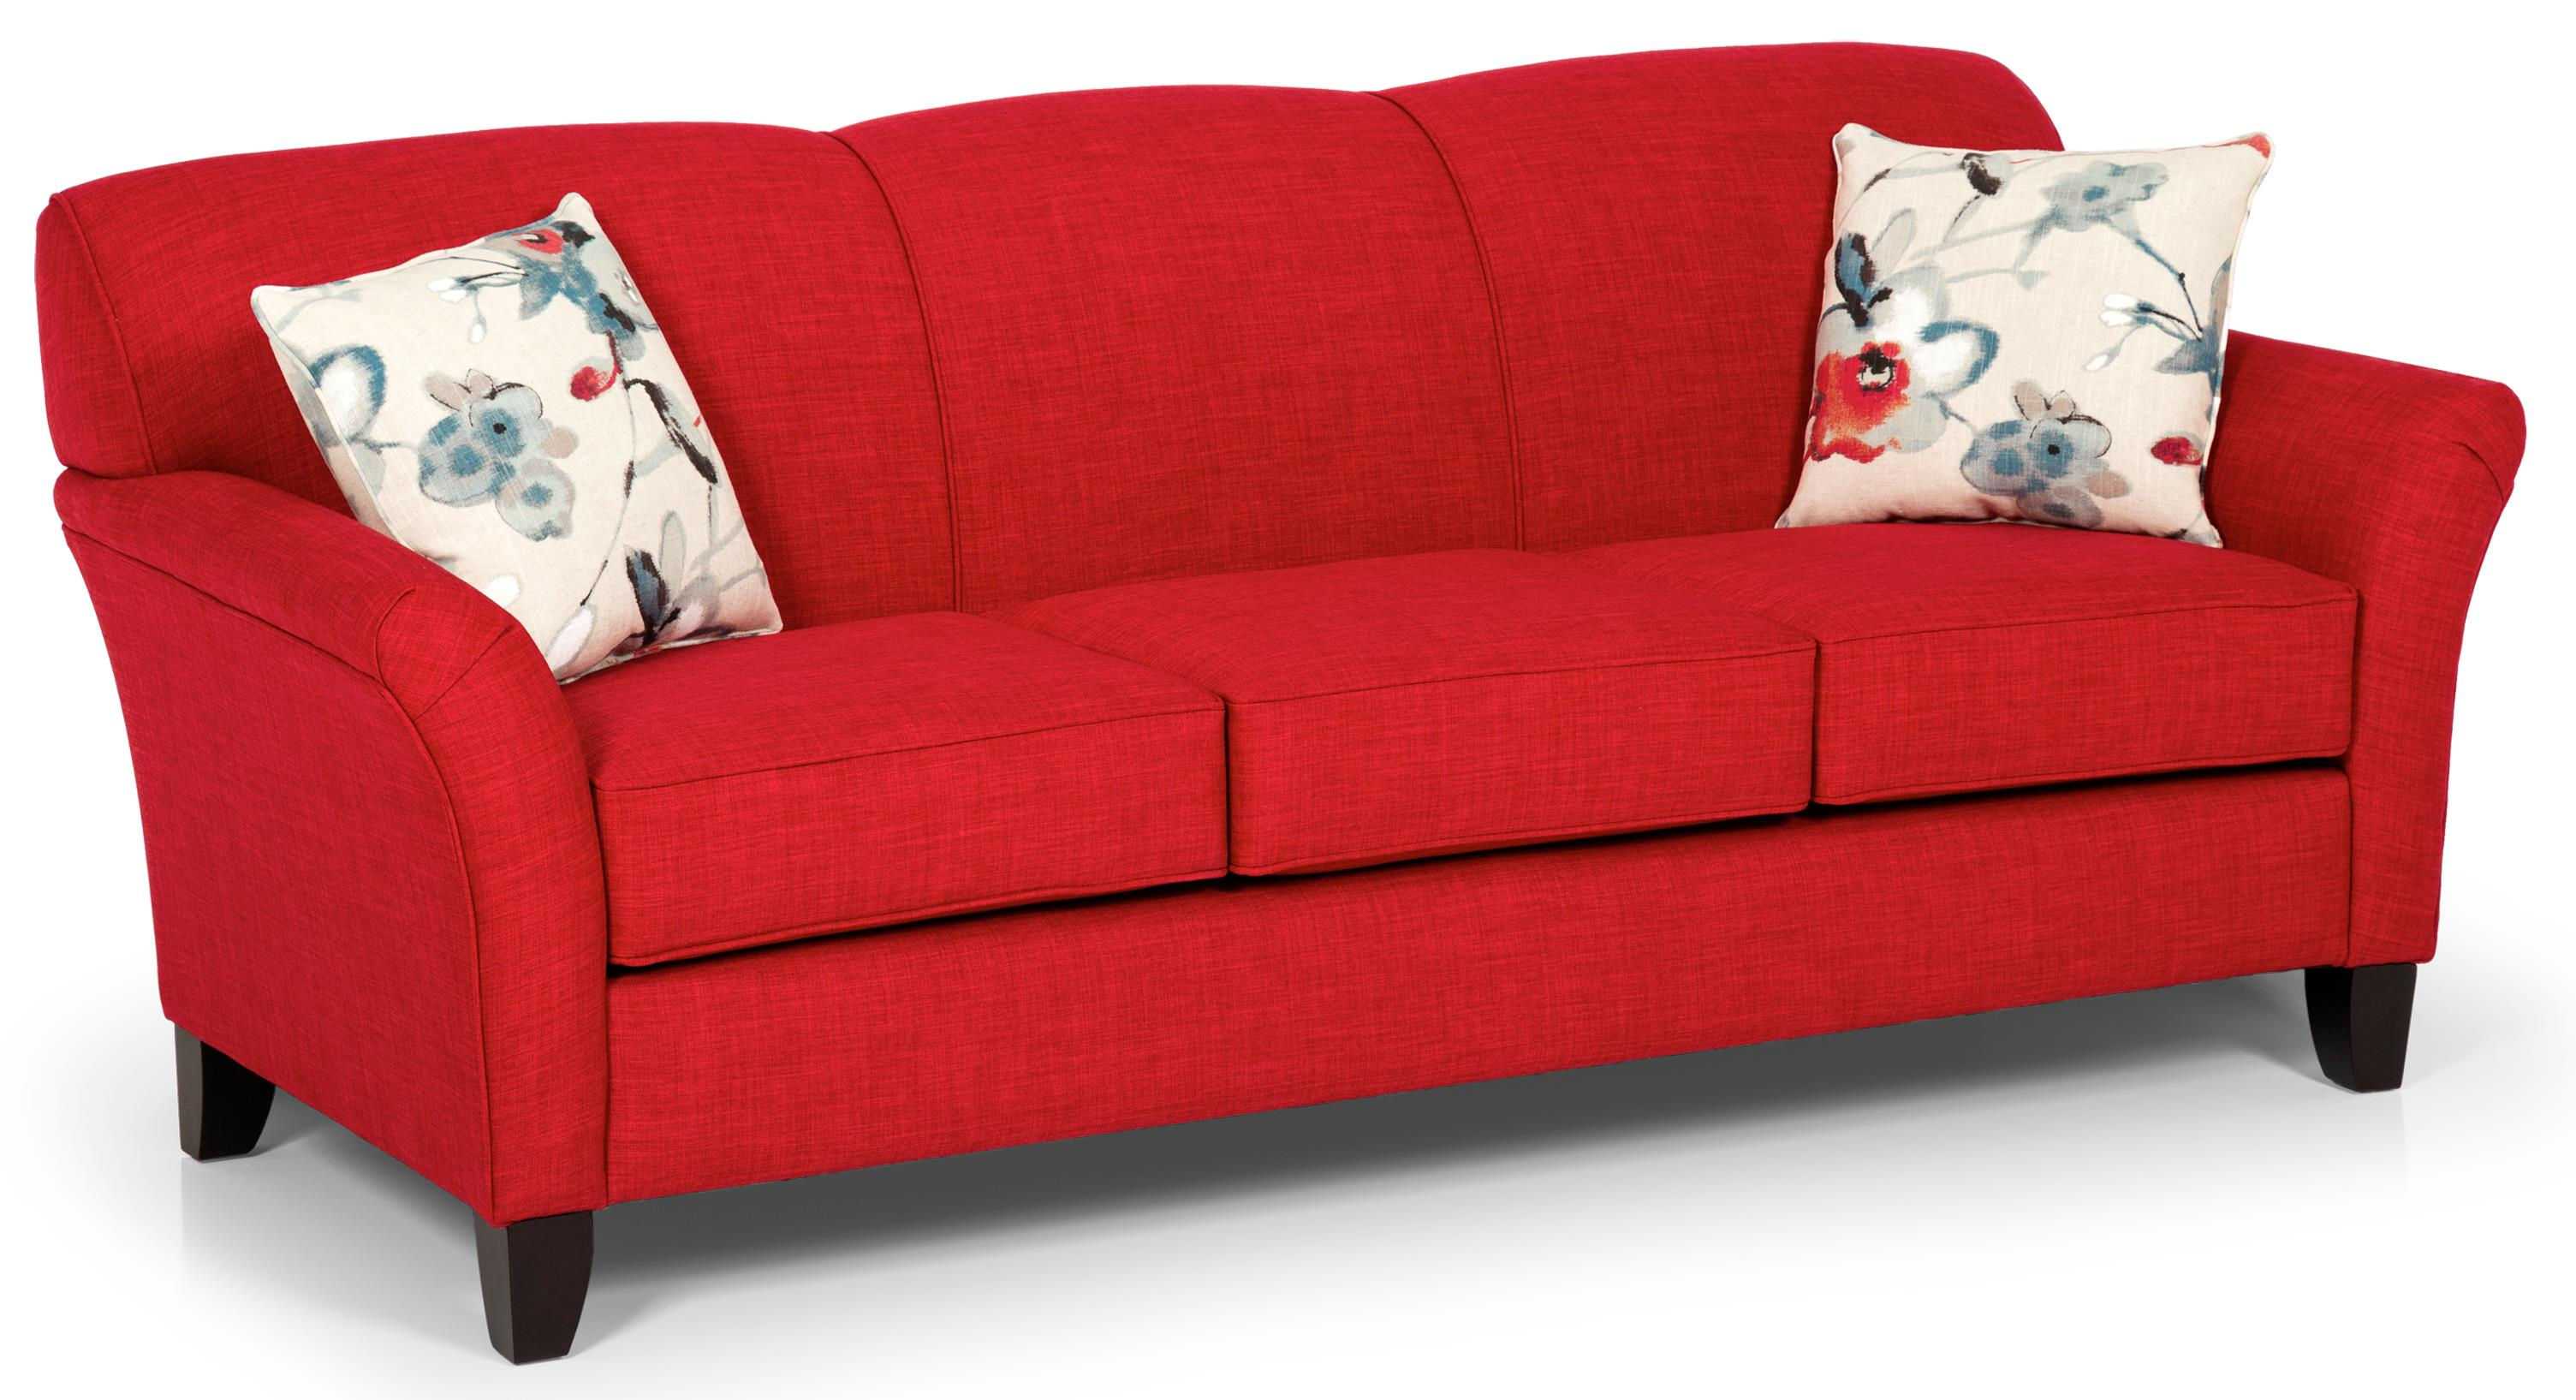 455 Sofa by Stanton at Wilson's Furniture